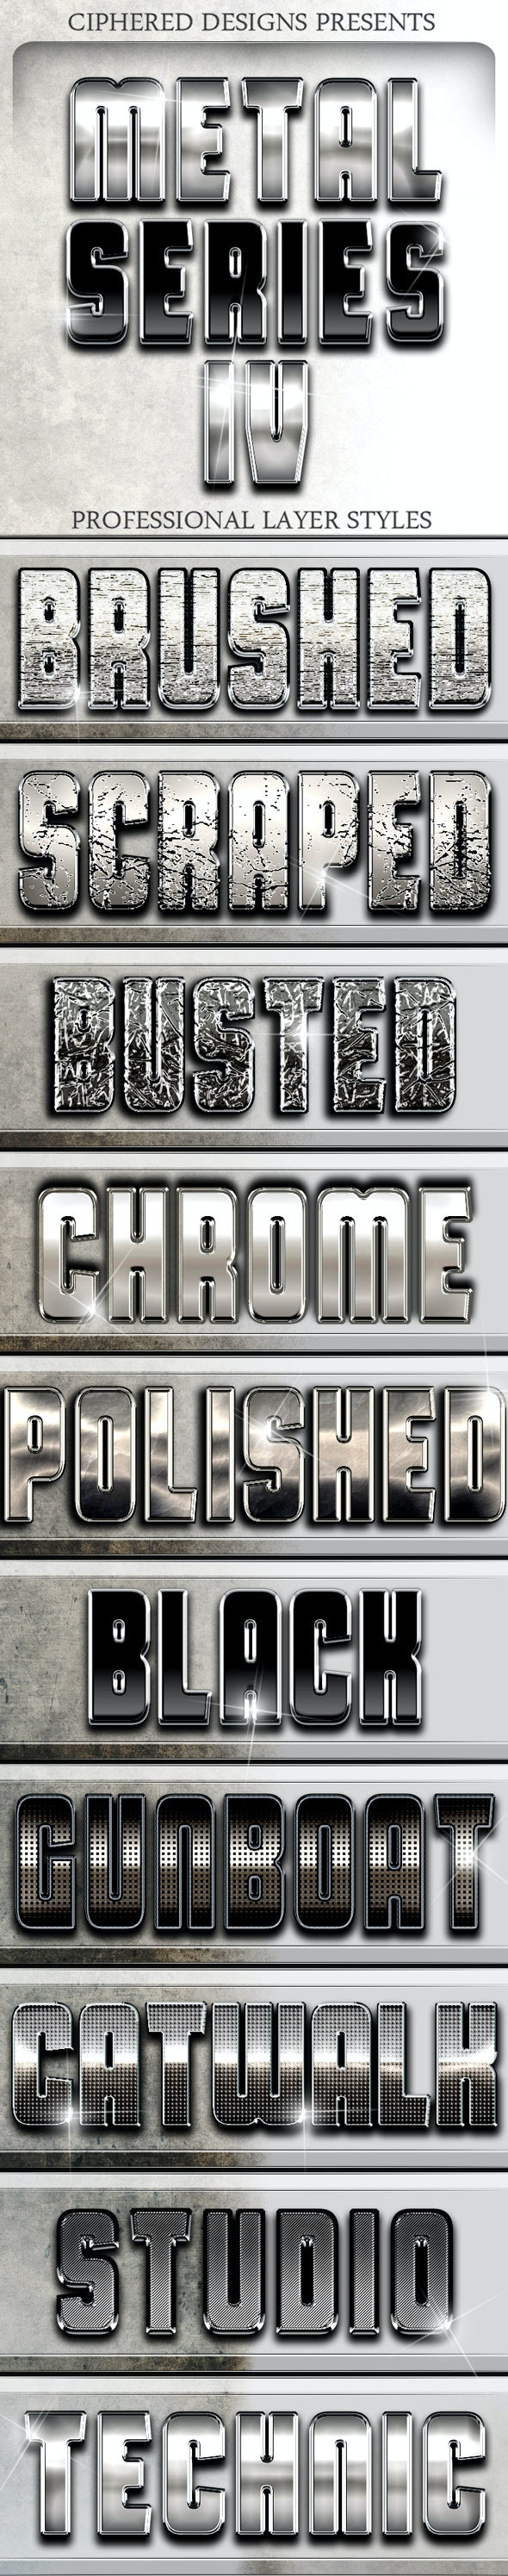 Metal Series IV - Professional Layer Styles - Text Effects Styles